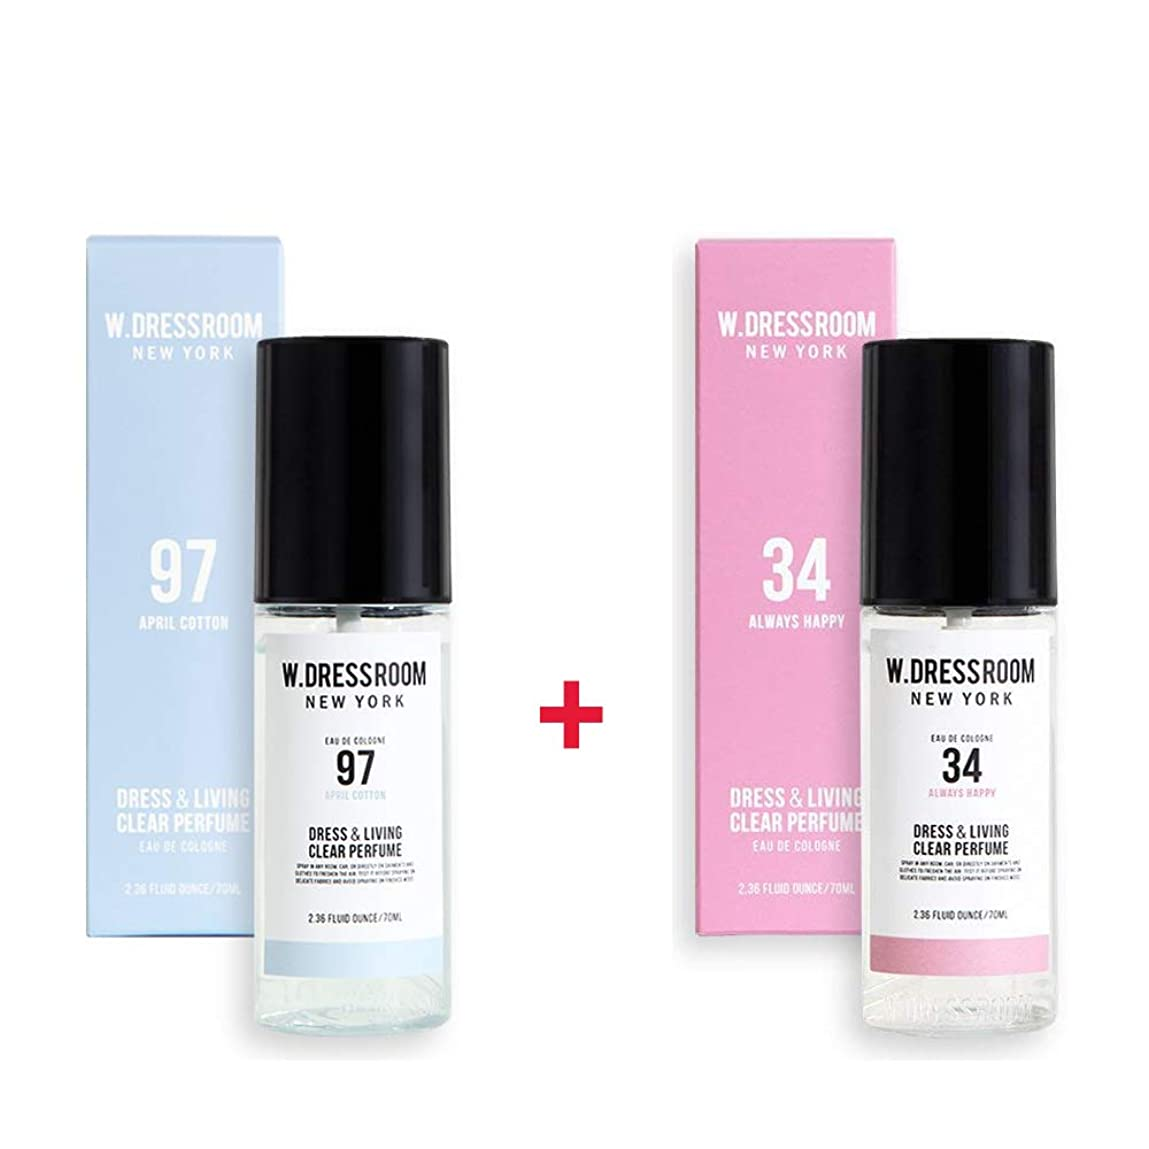 それによって壮大な不注意W.DRESSROOM Dress & Living Clear Perfume 70ml (No 97 April Cotton)+(No 34 Always Happy)